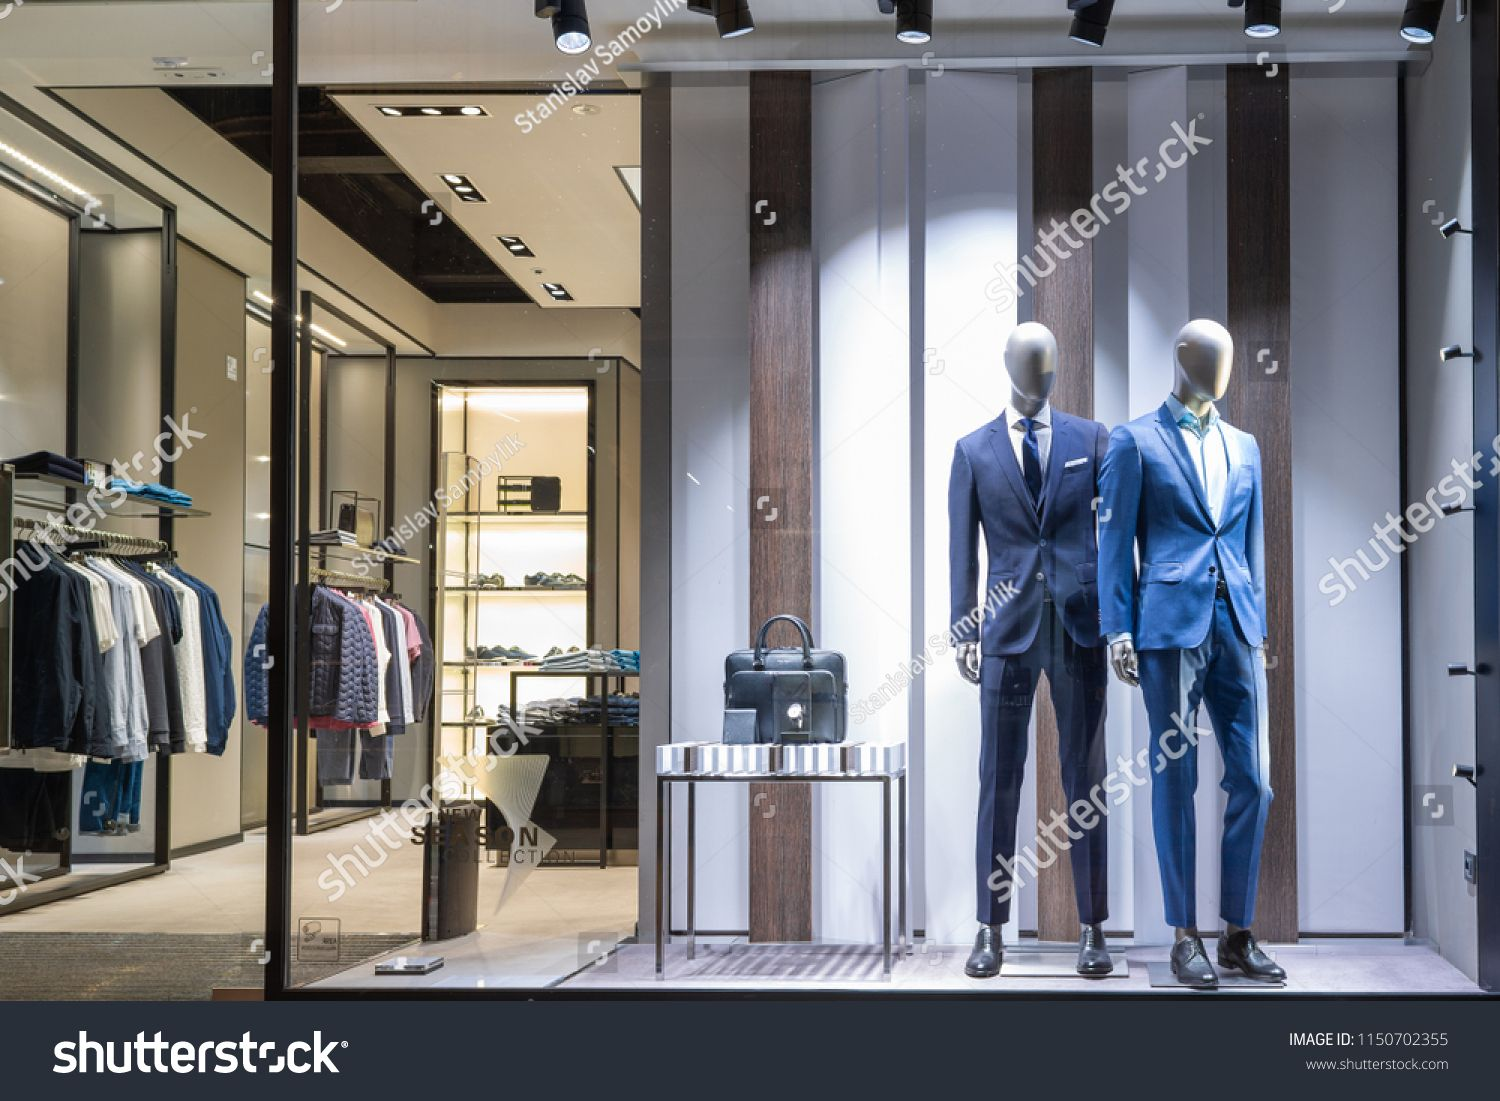 Verona Italy May 2017 Men Luxury Clothing Shop Hugo Doss Men Verona Italy Luxury Verona Italy Luxury Outfits Shopping Outfit